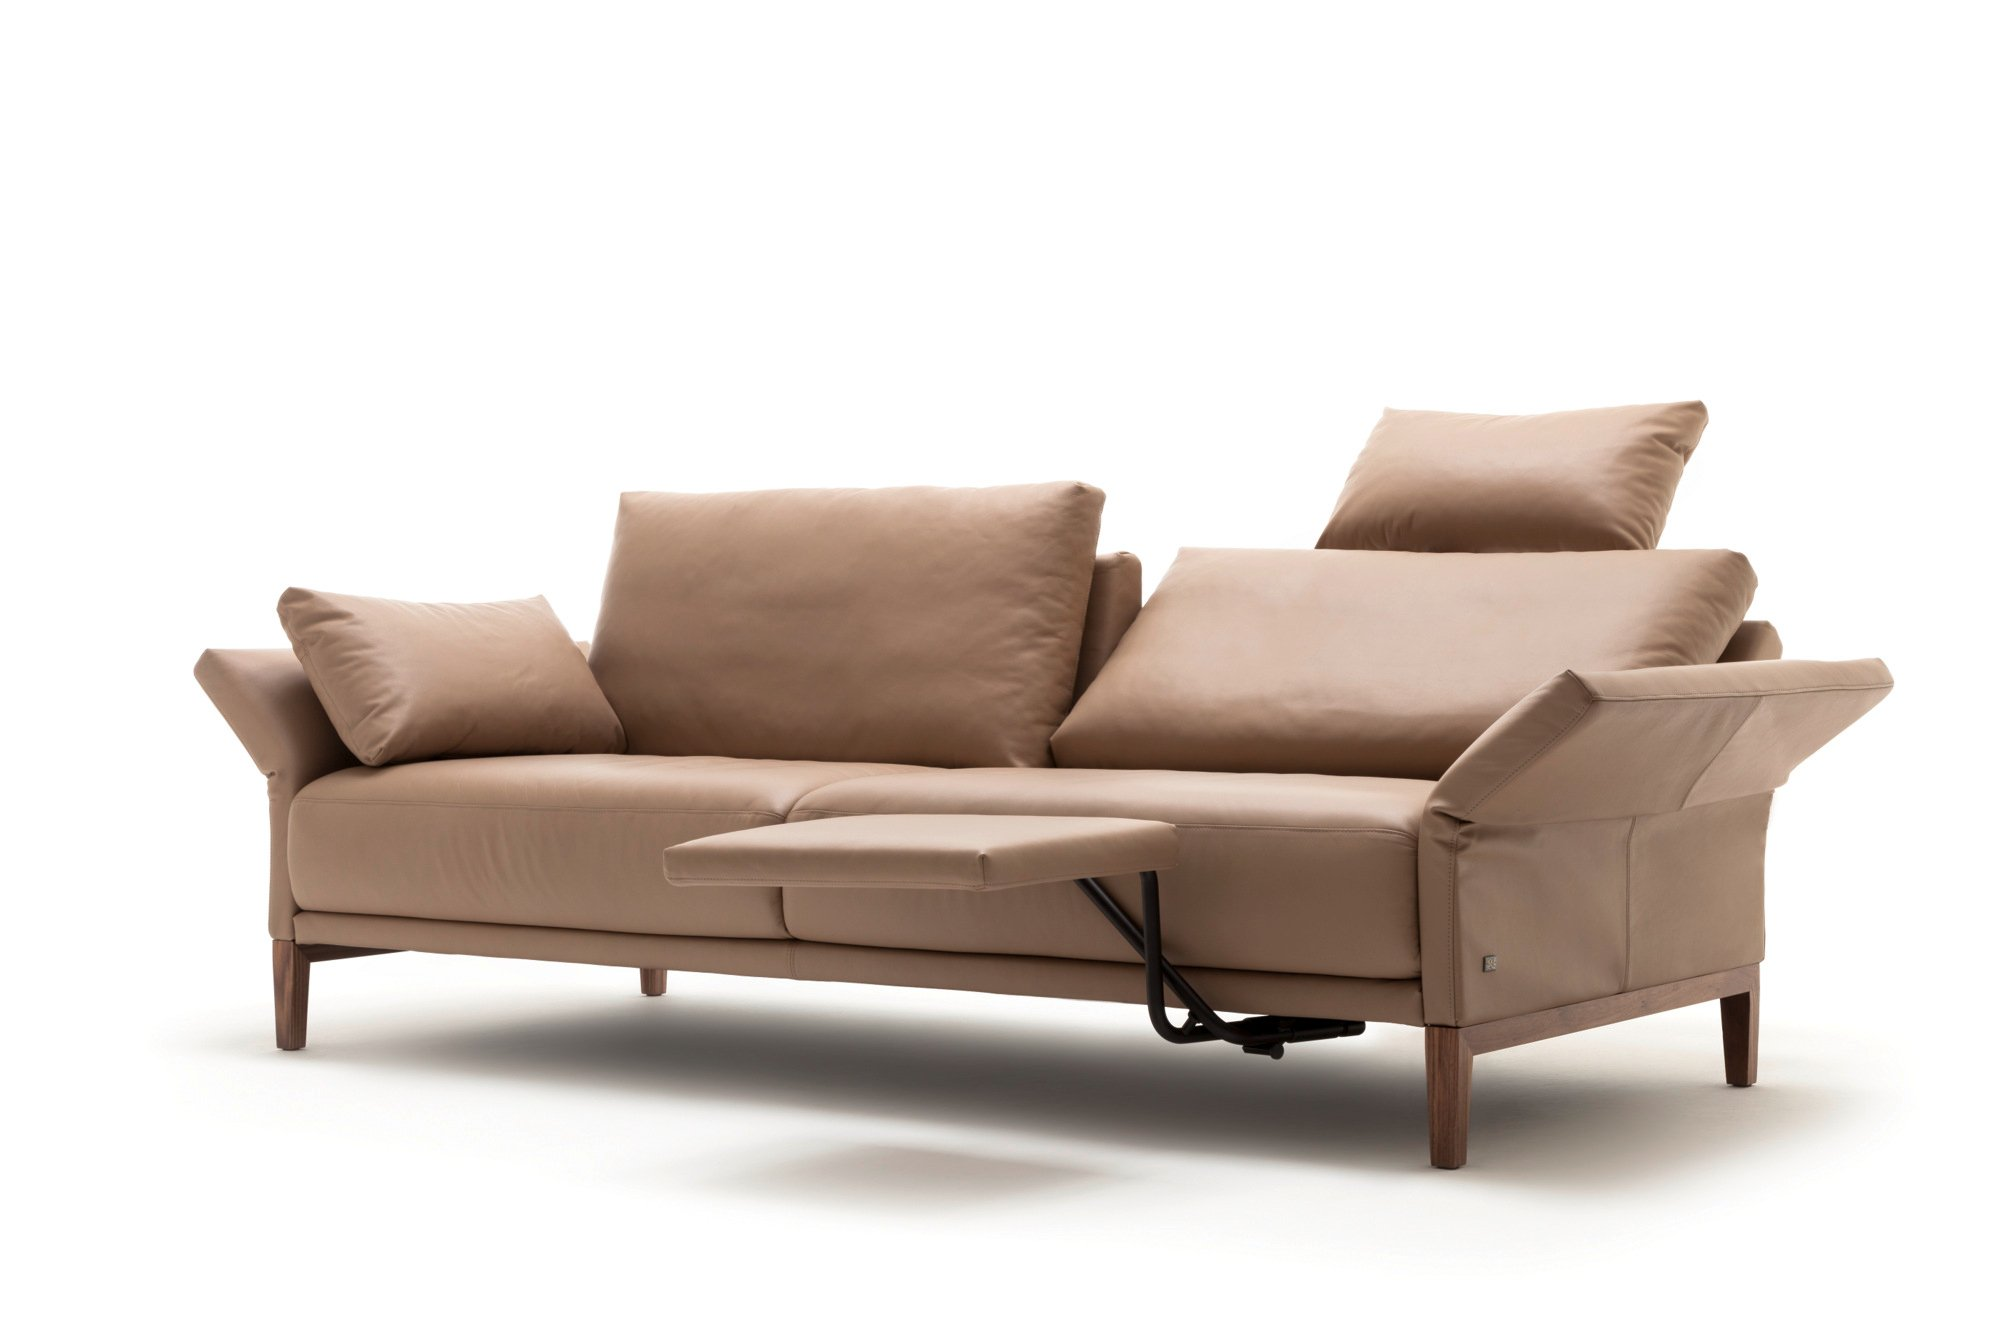 Cara sofa aus leder kollektion cara by rolf benz design for Couch benz